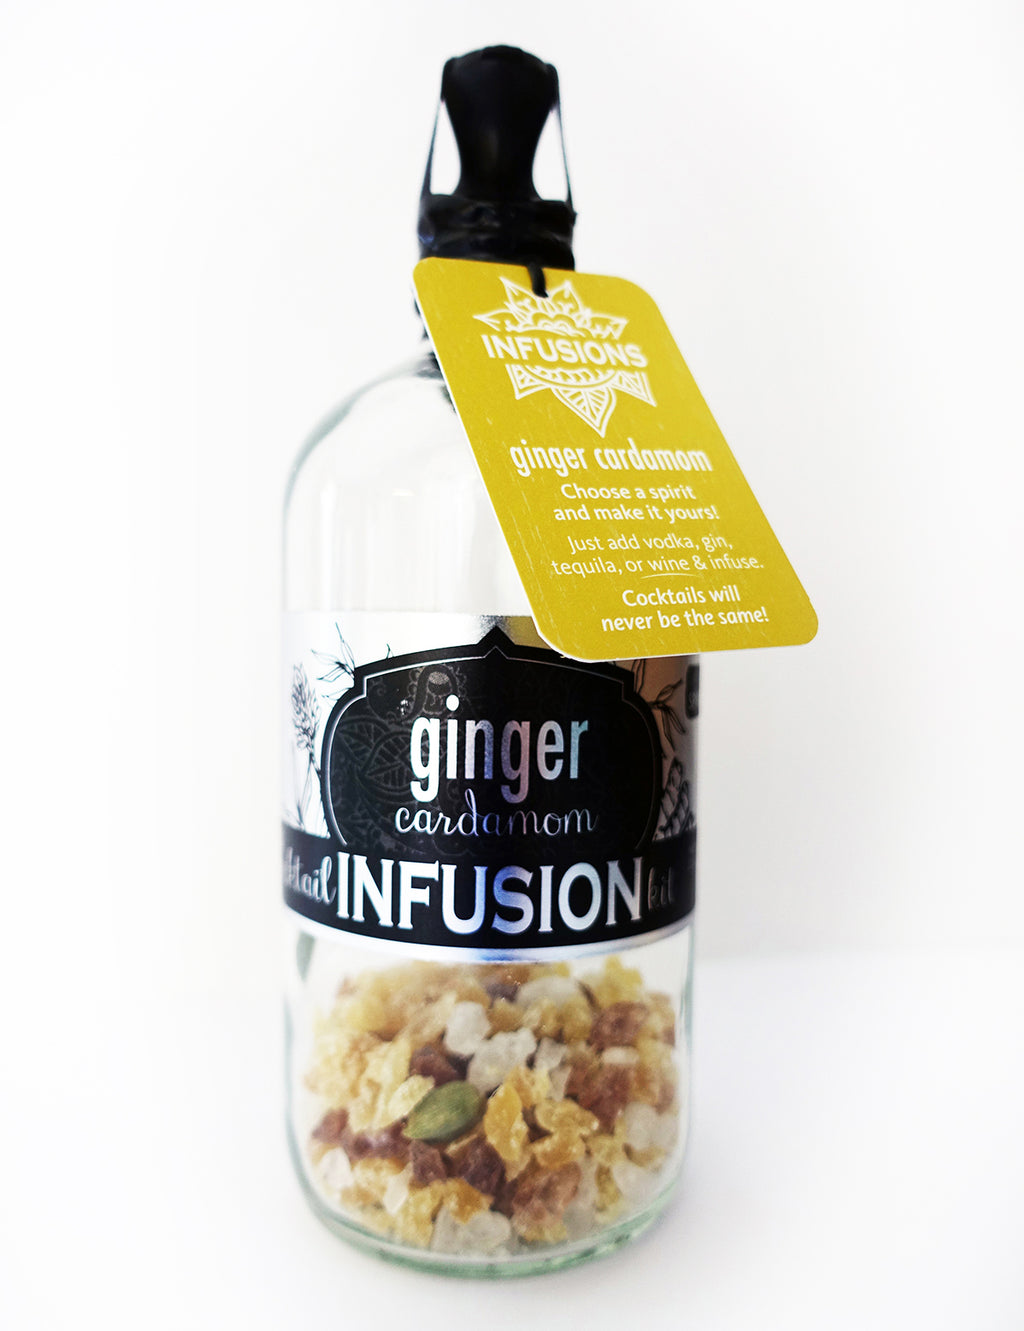 Ginger Cardamom Cocktail Infusion - gilt+gossamer